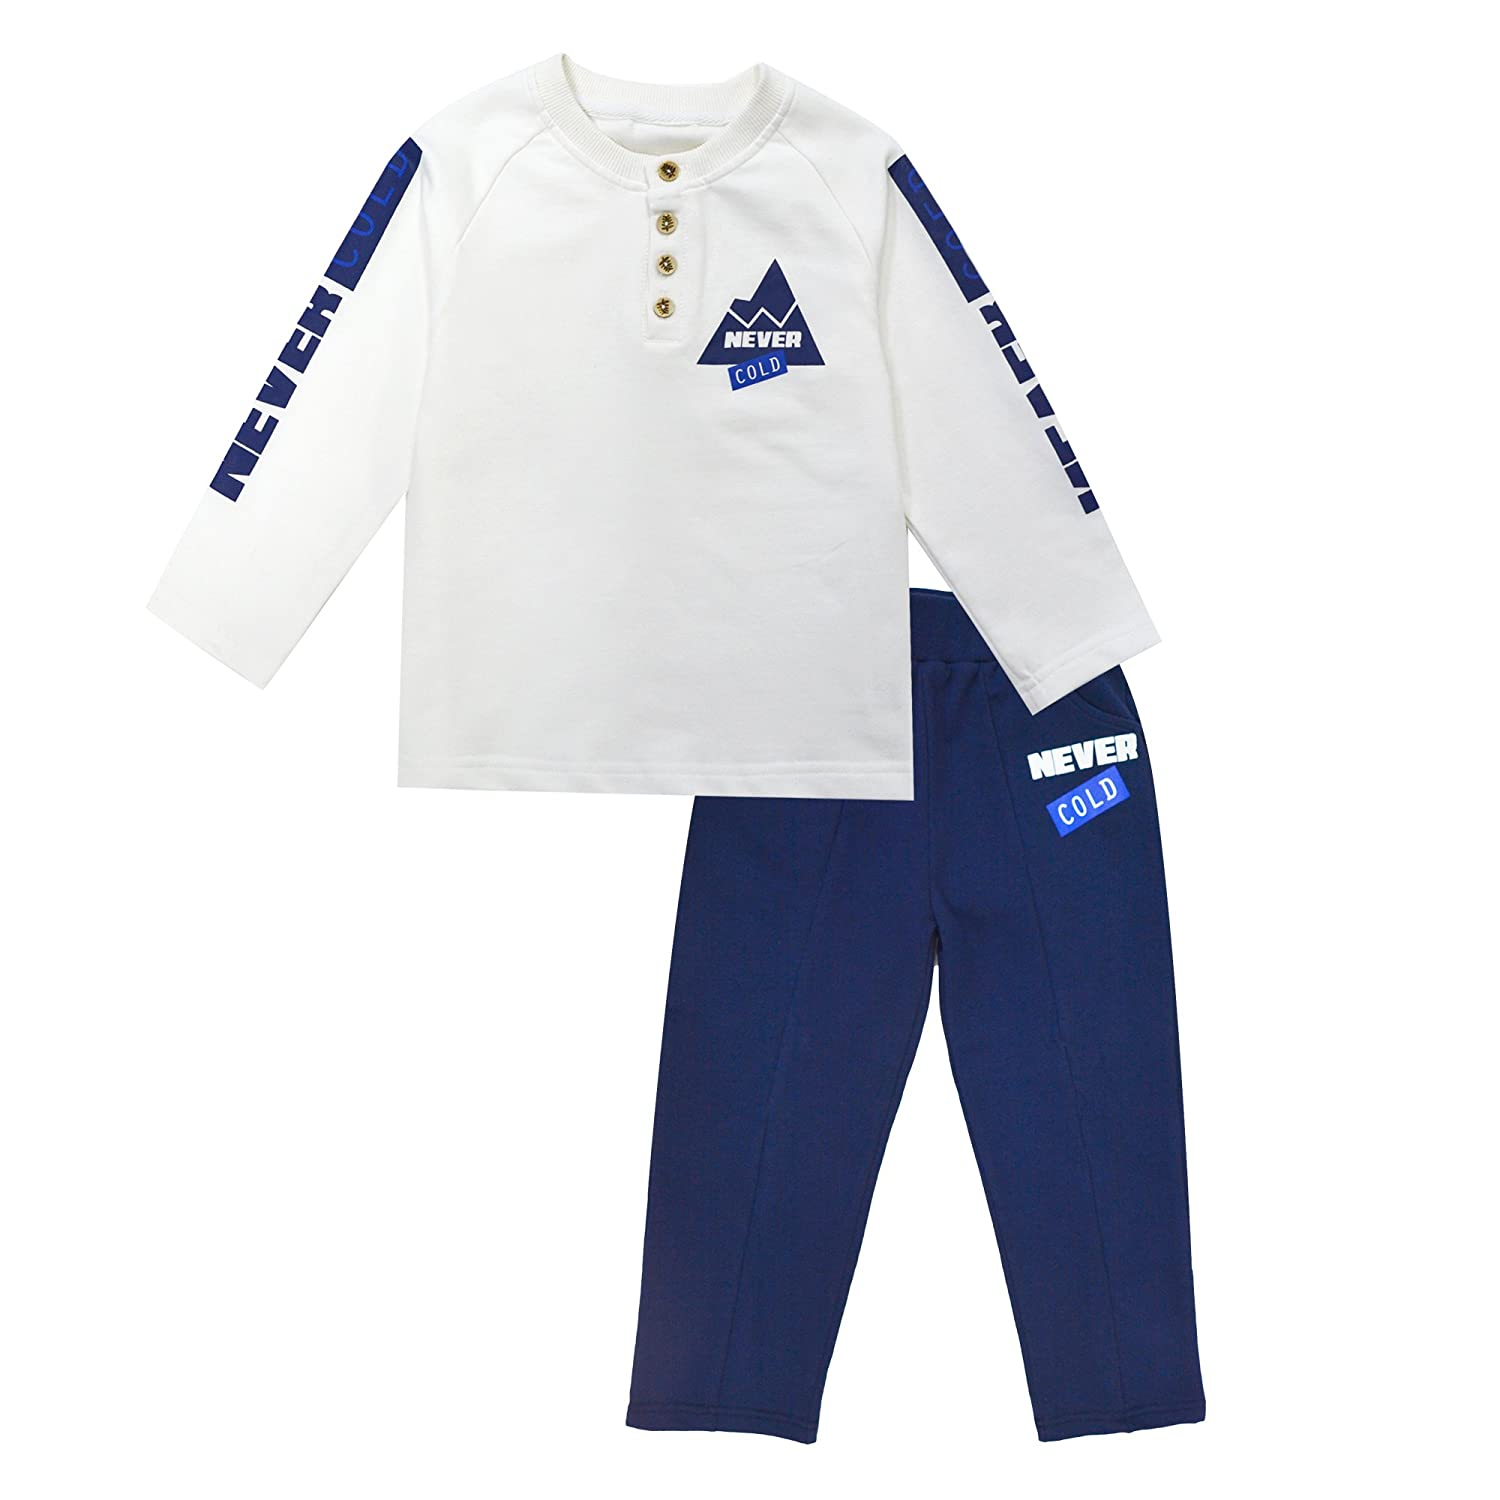 KISBINI Boy's Cotton Casual Shirt and Elastic Sport Panties Suits 2-Pc Sets